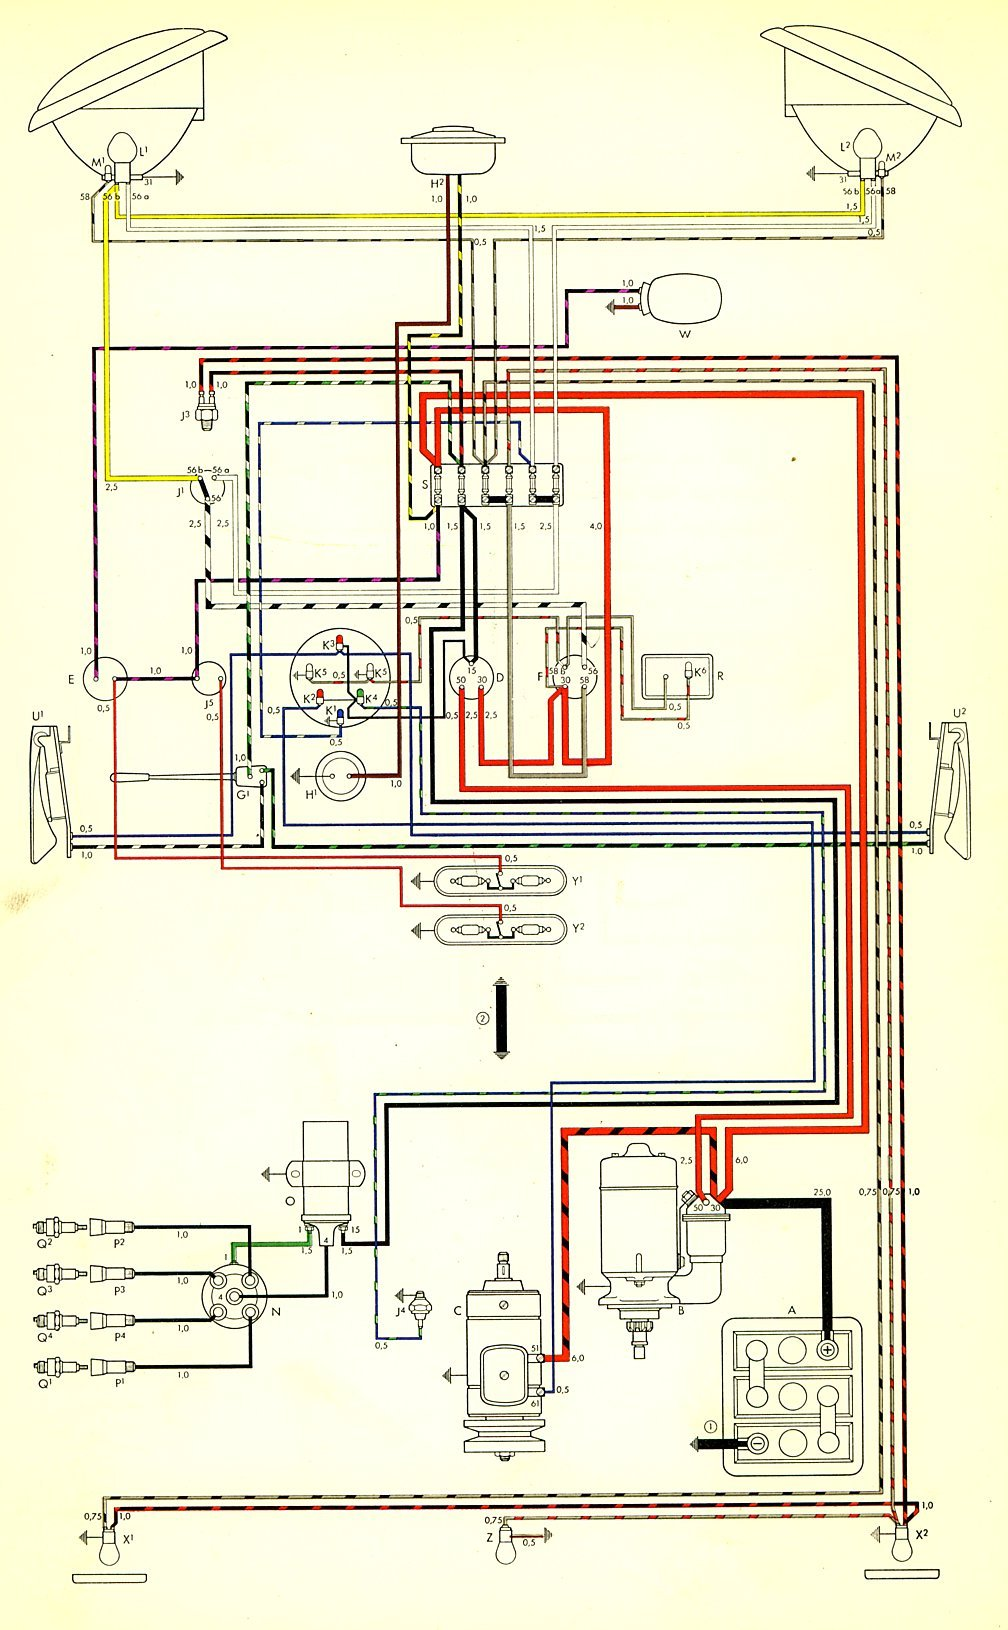 1959 Beetle Wiring Diagram About 2001 Vw Fuse Box Diagrams Starting Know U2022 74 Super And